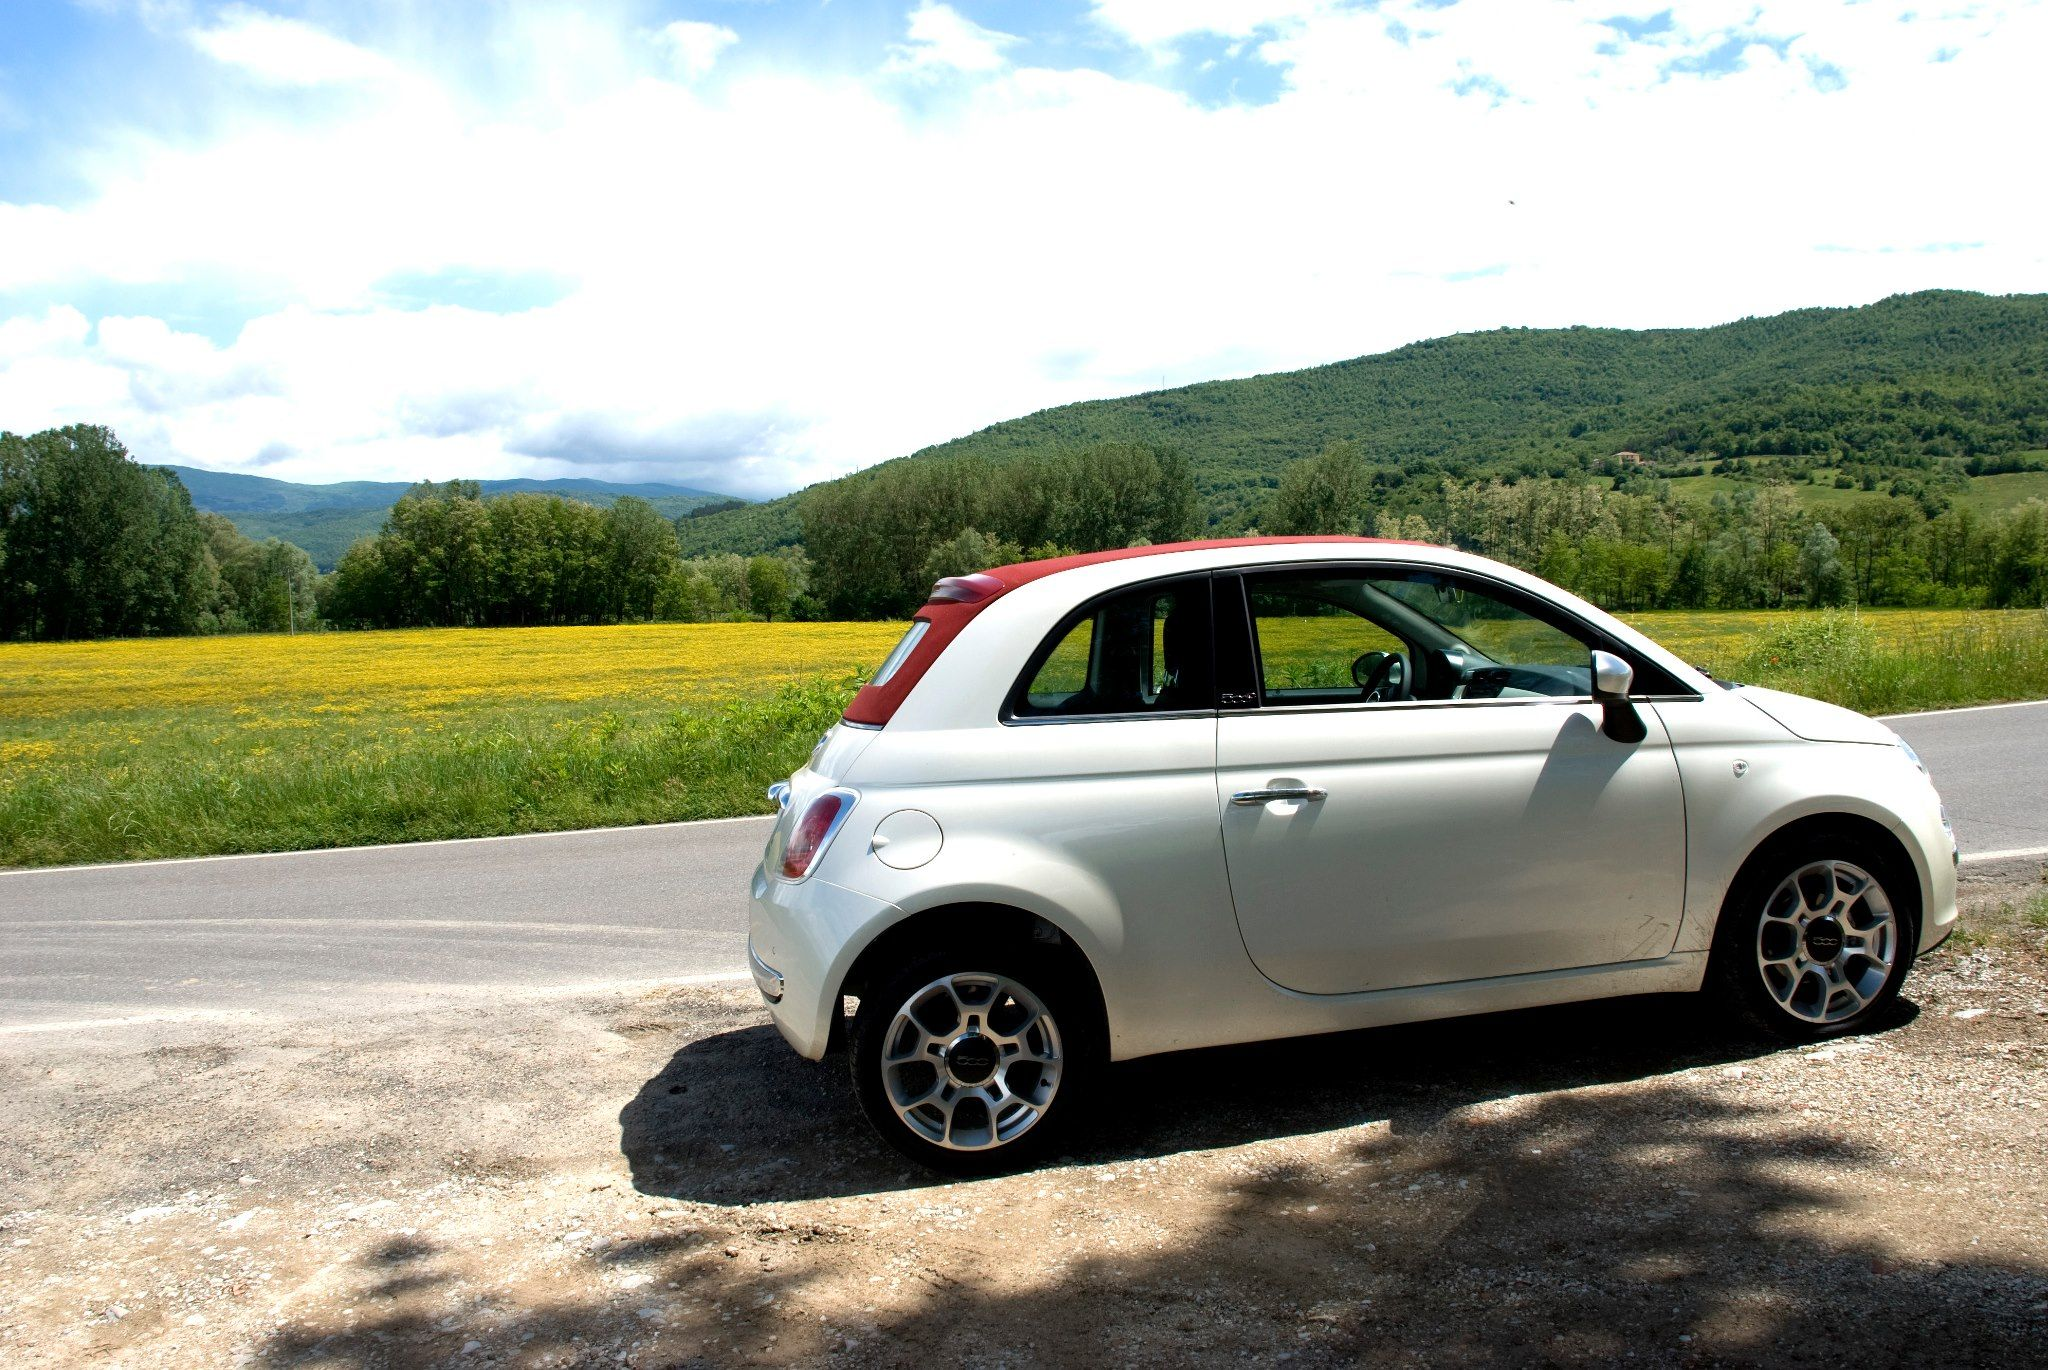 Fiat 500 White with Red Sunroof